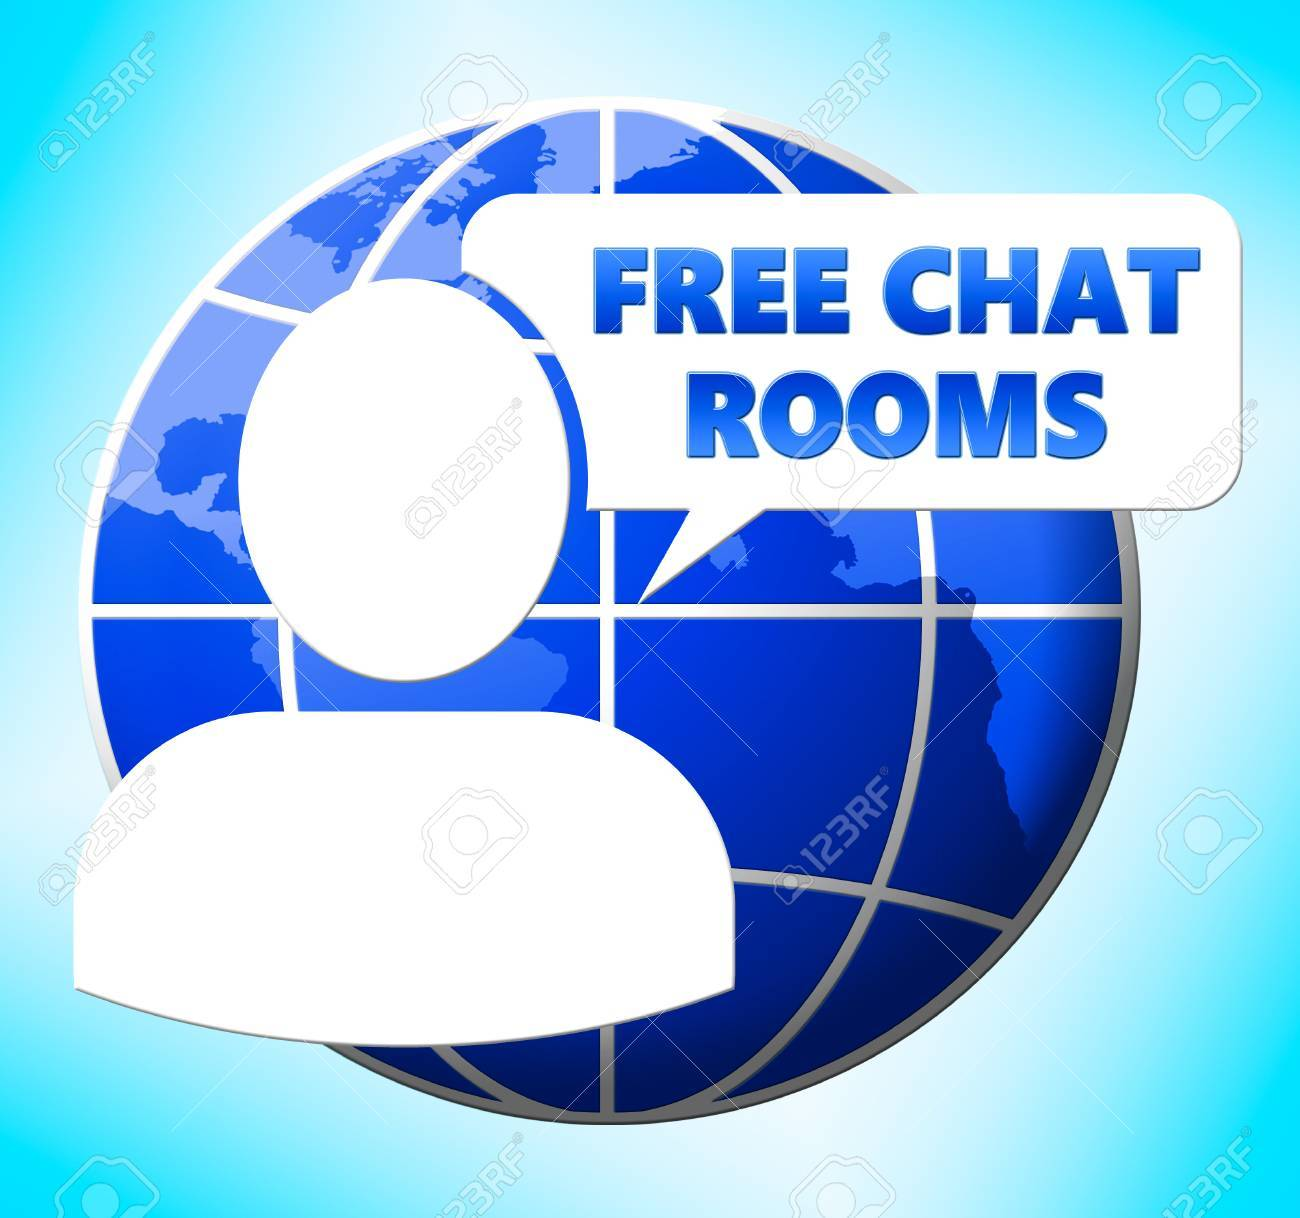 free chat rooms for women